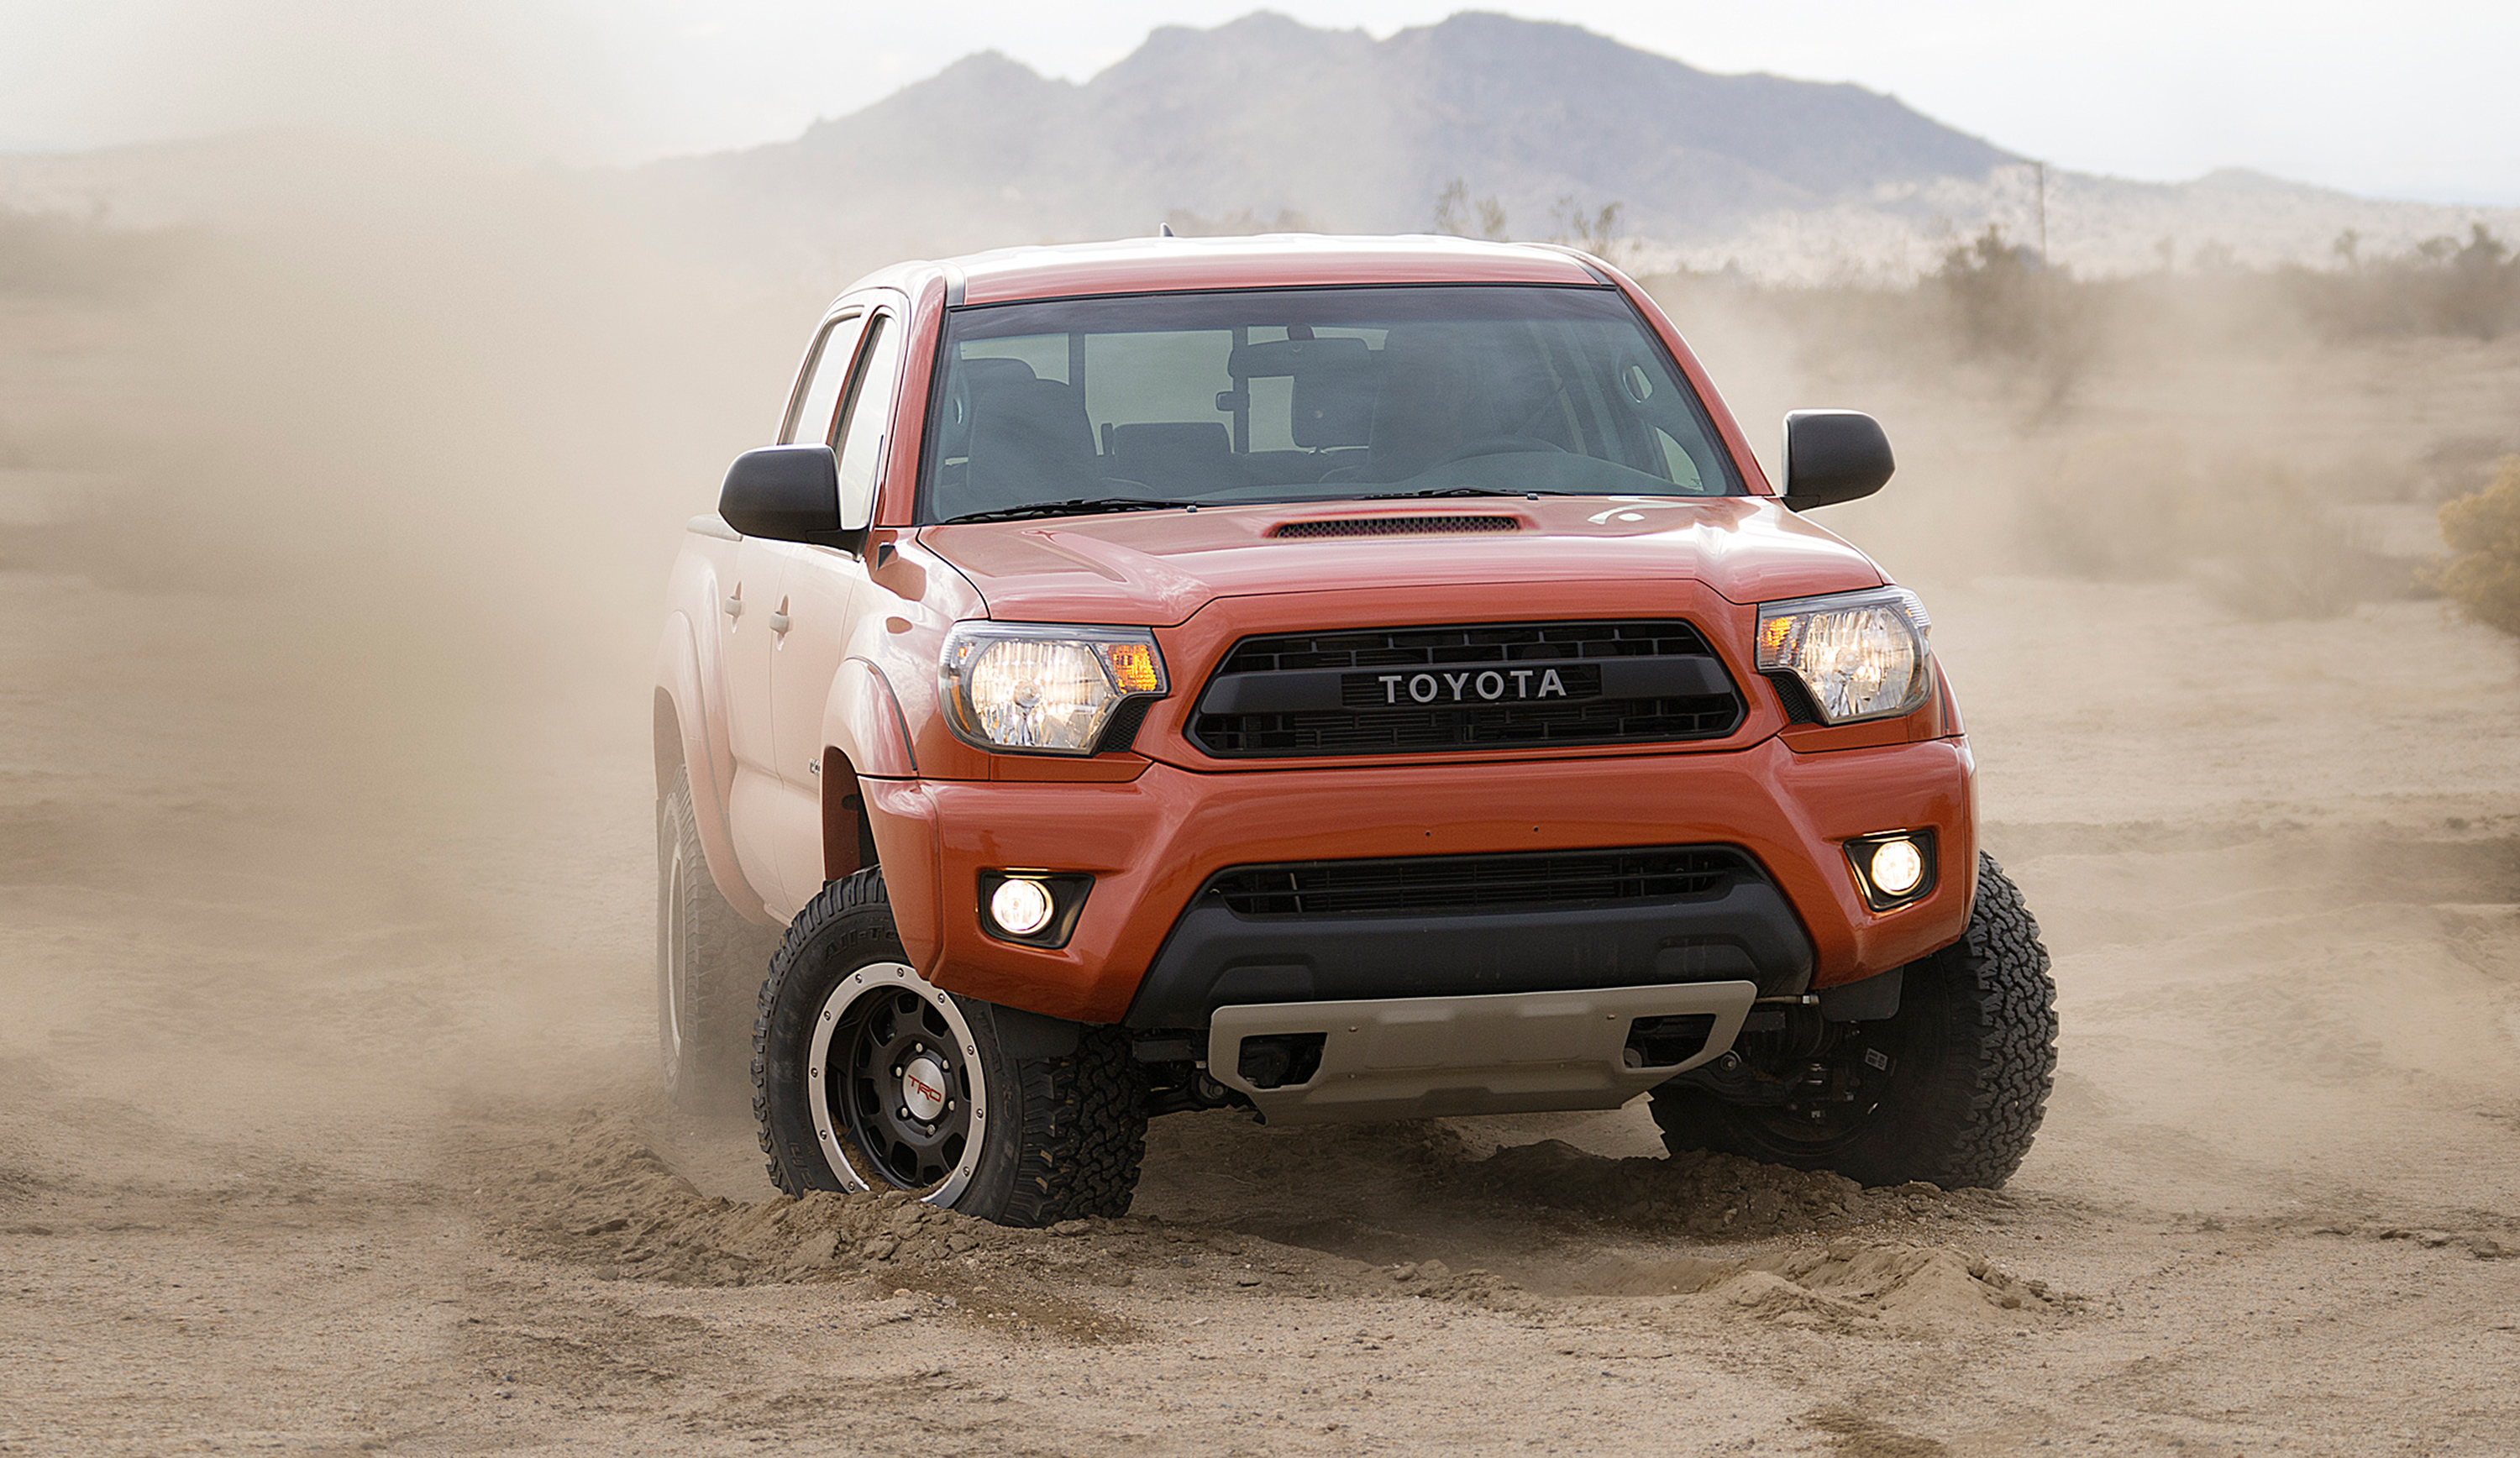 Another Edition To Toyotau0027s Trio Of Off Road Trucks Is The 2015 Tacoma TRD  Pro. Itu0027s Based Off The Same Concept As The 4Runner TRD Pro And Features  Much Of ...